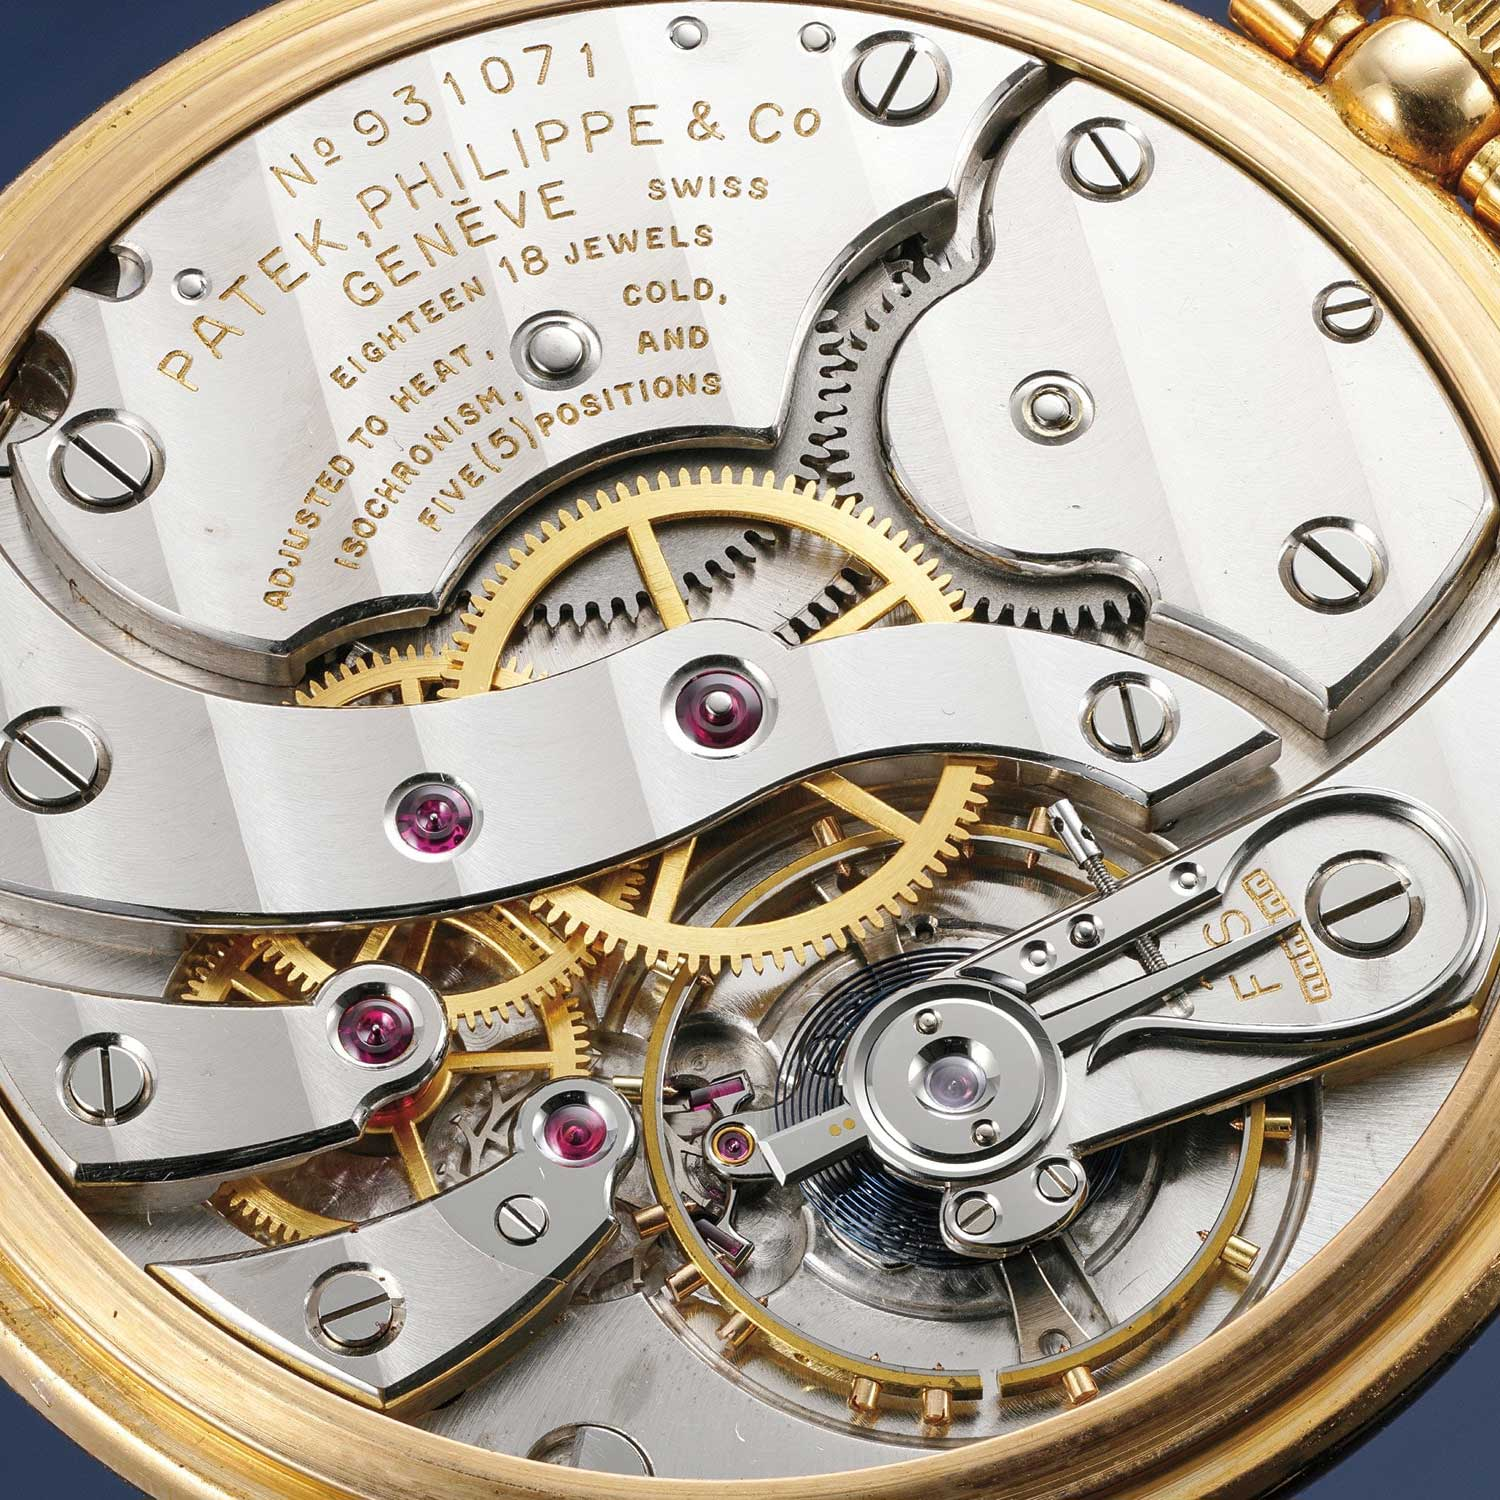 1937 onwards, for a total of 20 years, Cottier created around 90 605 HU World Time pocket watch movements. Seen here is the caliber 17-170HU which is the Cottier complication built on top of a 17 ligne Patek pocket watch caliber. (Image: Phillips)